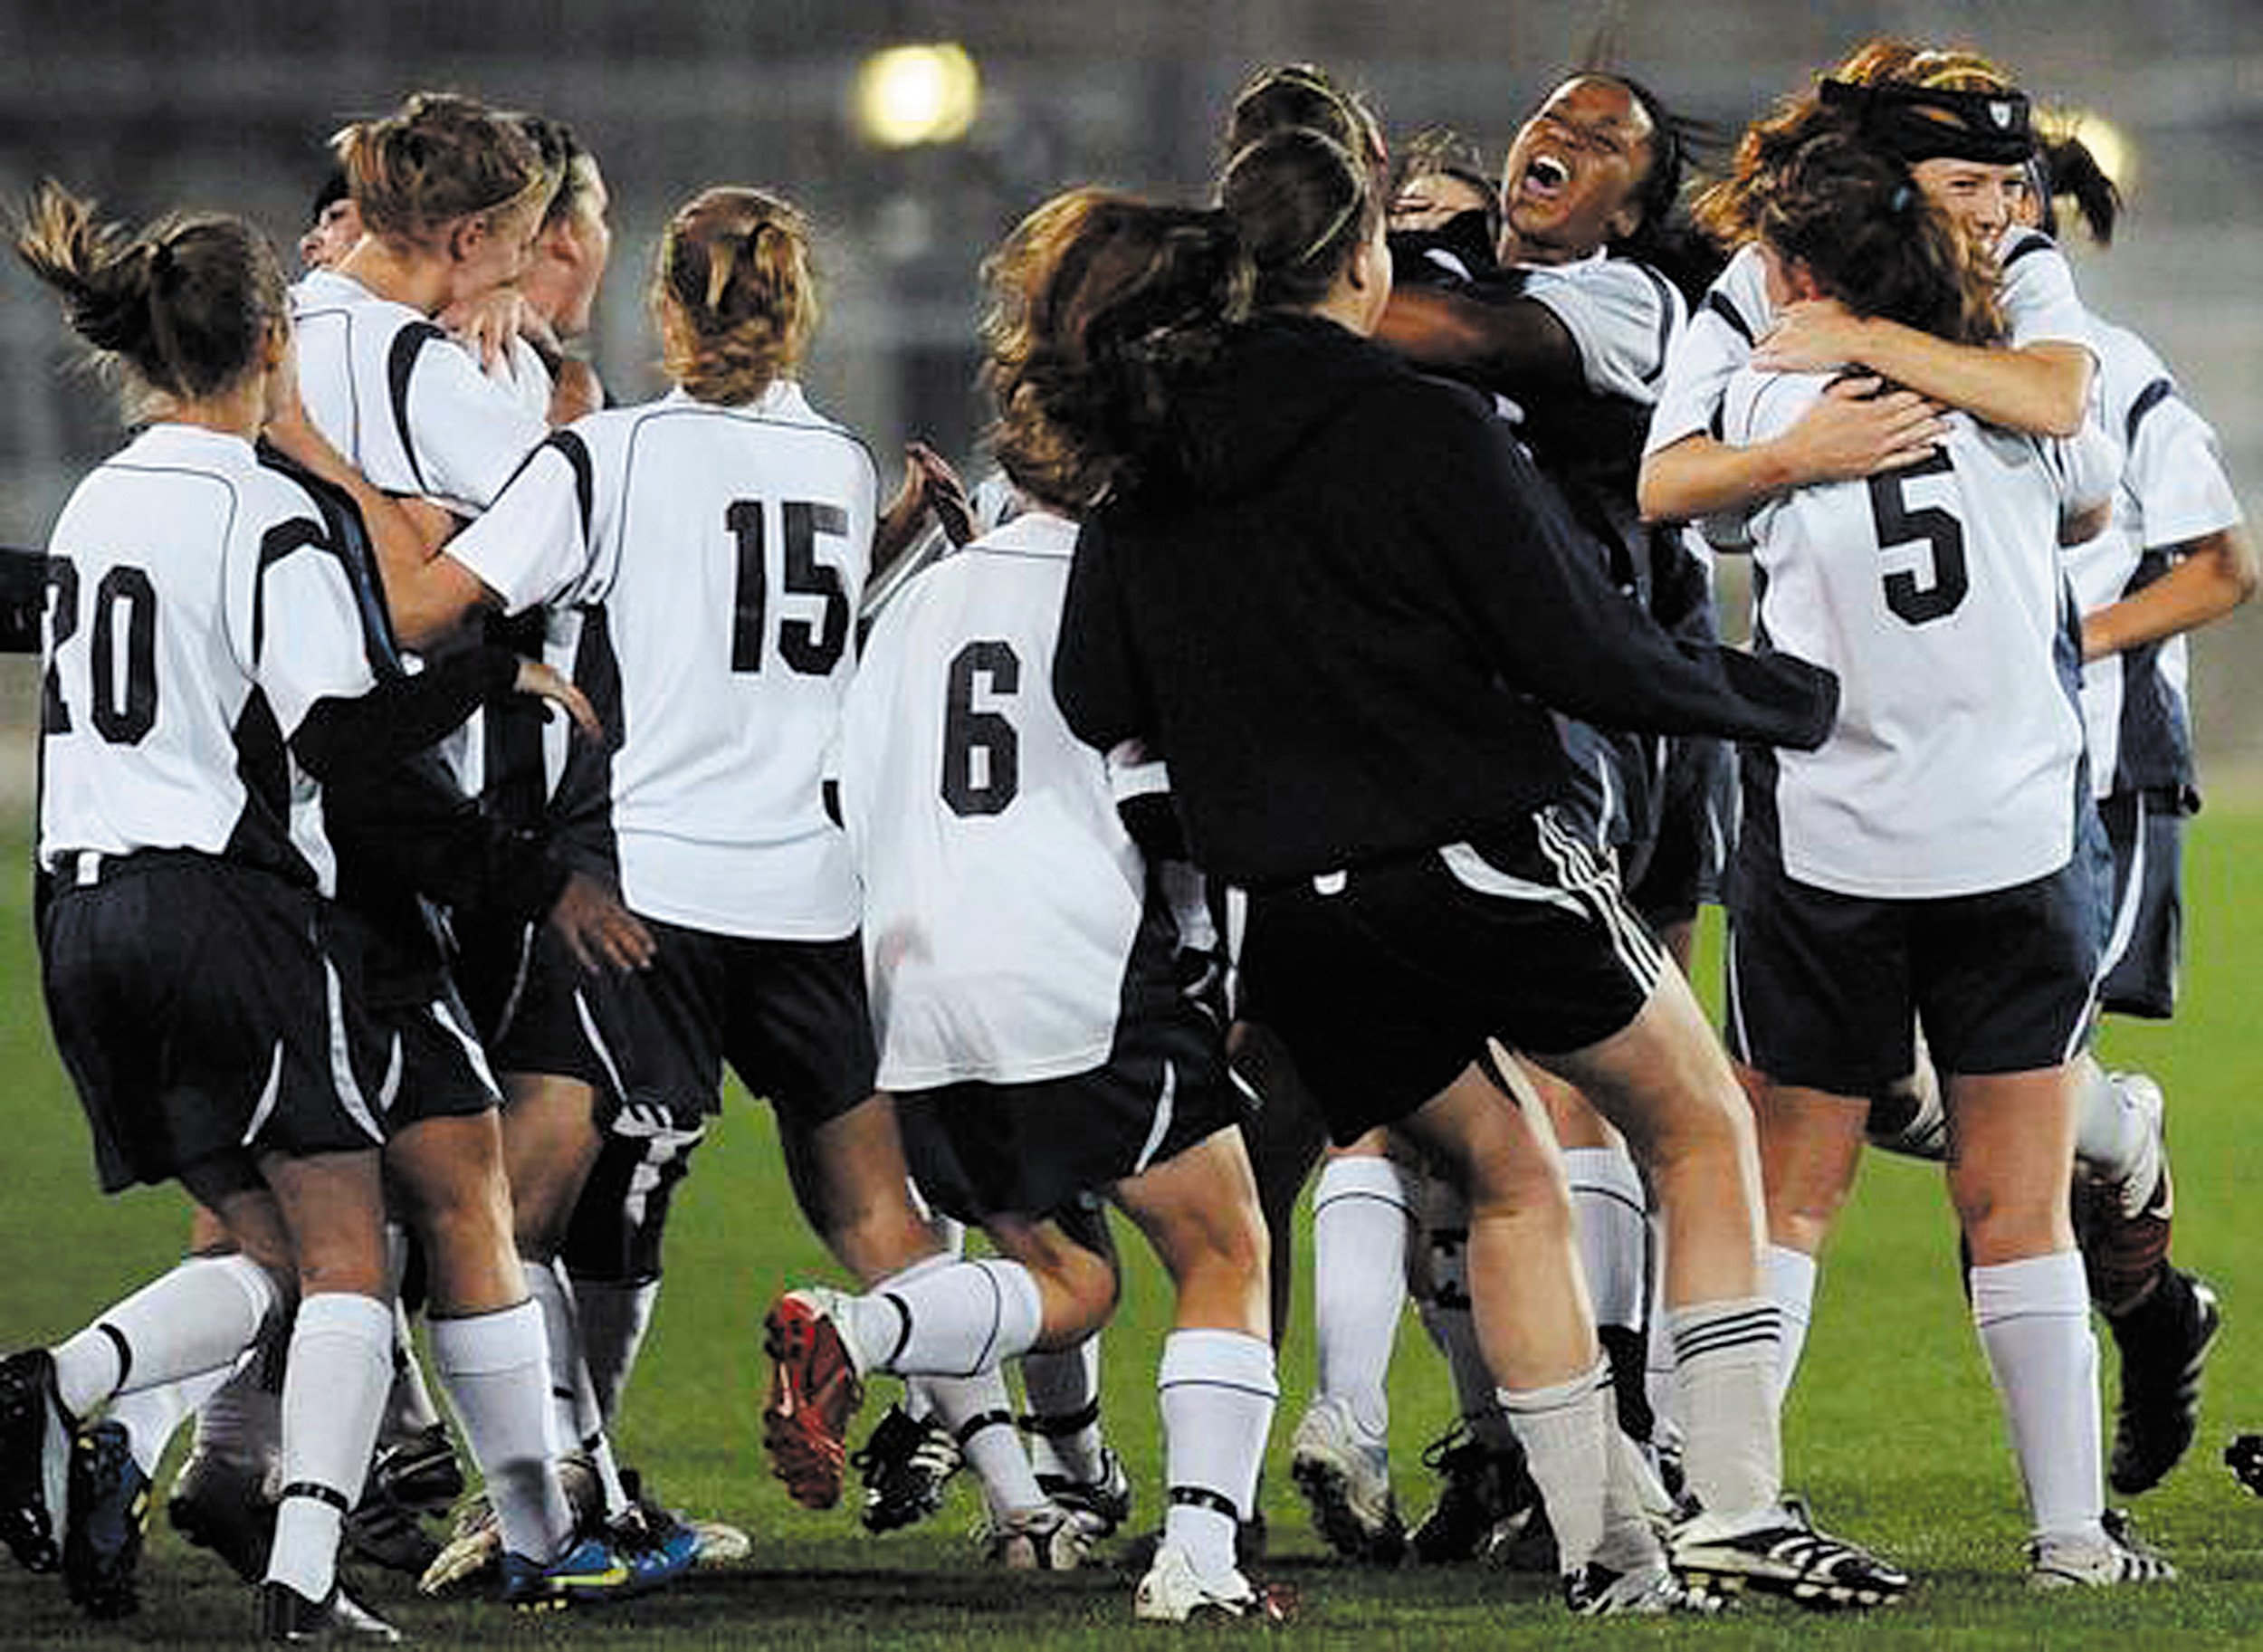 All of The Classical Academy athletic teams are moving to the Class 4A Metro League this fall, with the exception of football. A surge in enrollment at the high school level in recent years has forced the move up. TCA girls are seen here celebrating a 3A soccer championship from a few year's ago. Courtesy photo